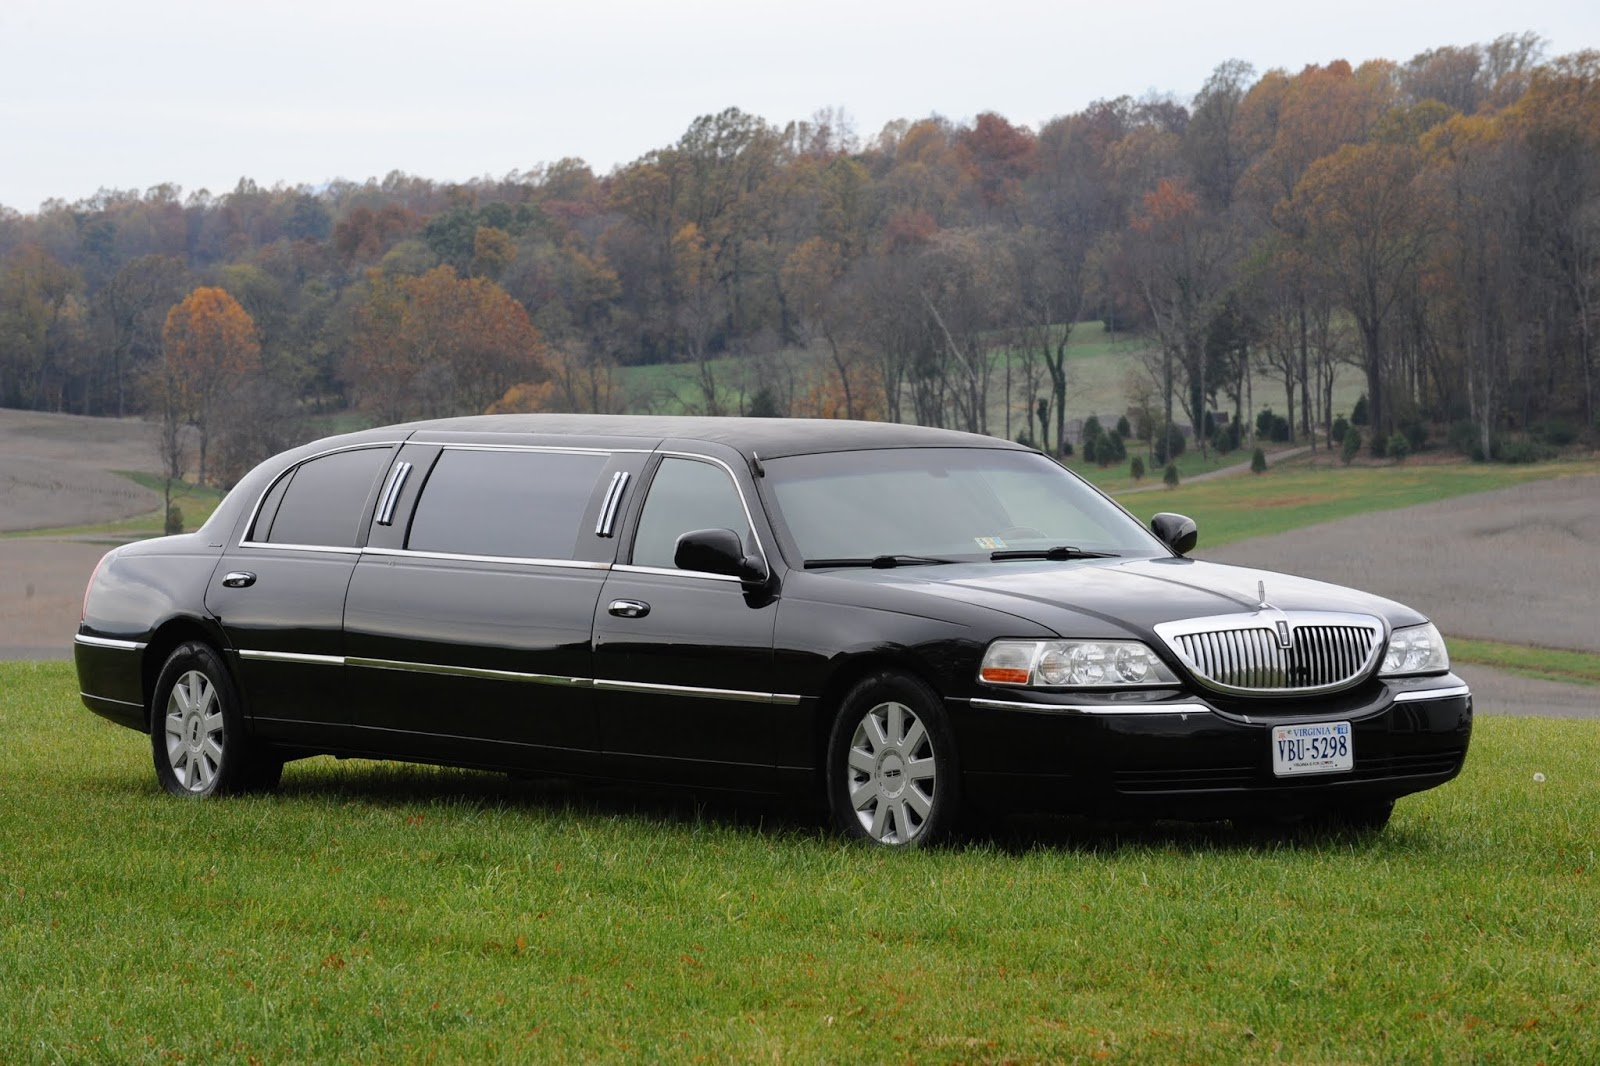 Image result for WHY SHOULD WE HIRE PROFESSIONAL LIMO SERVICE FOR CORPORATE CLIENTS